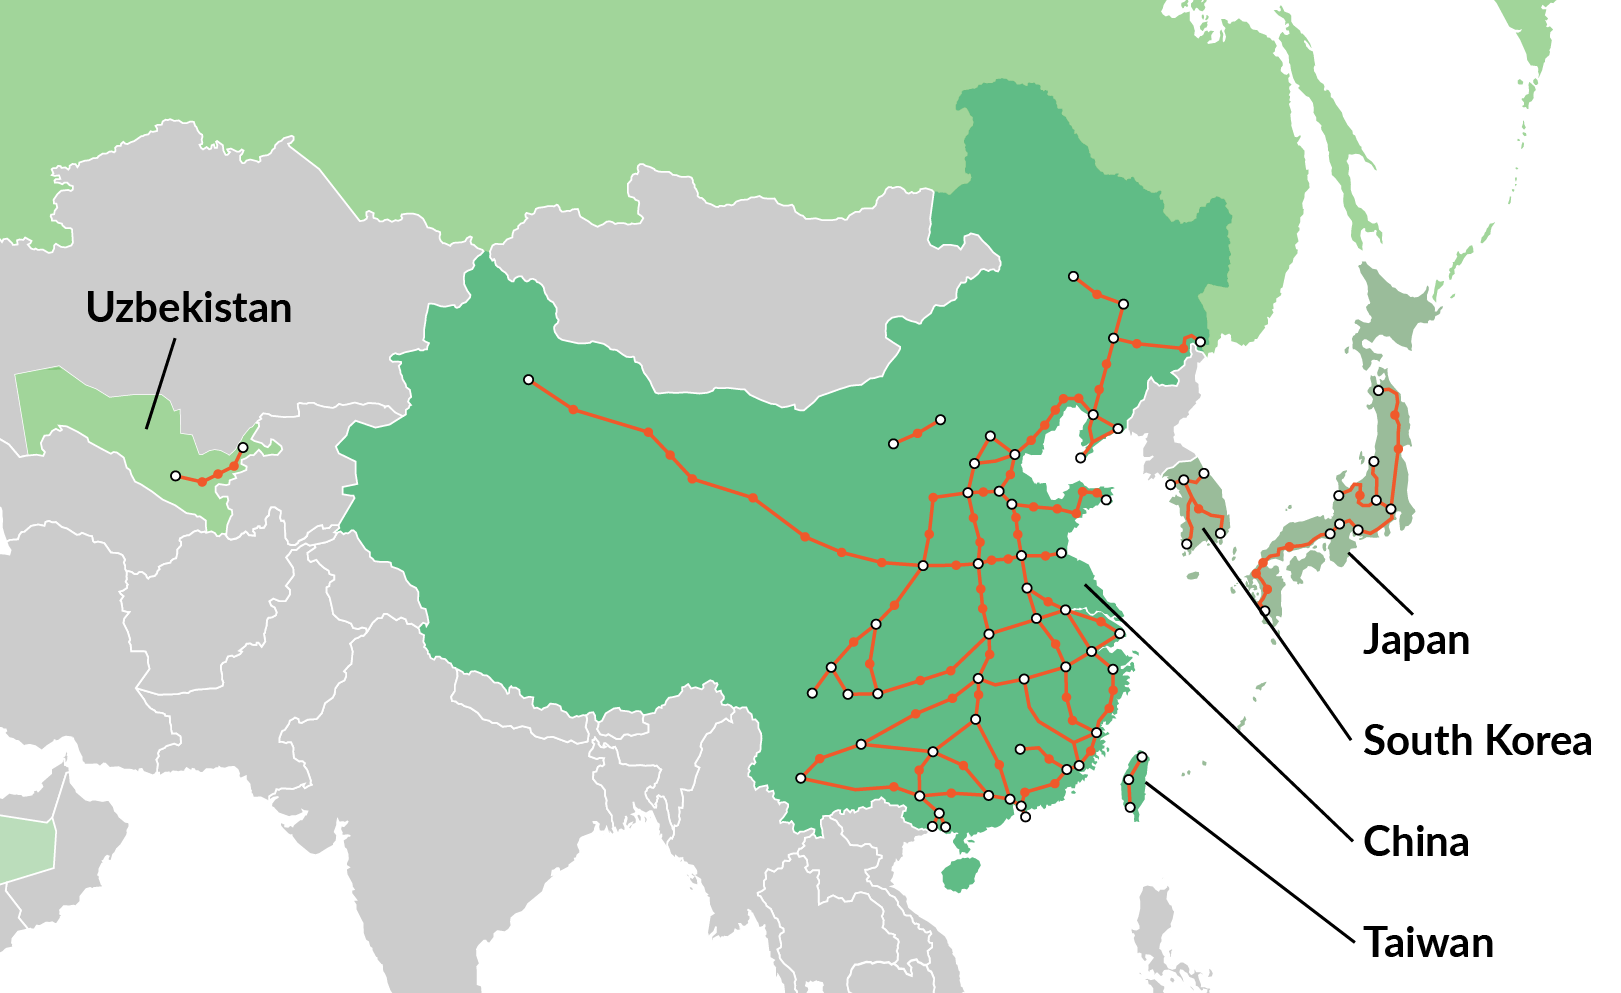 High-speed rail in Asia: Japan, South Korea, China, Taiwan, Uzbekistan